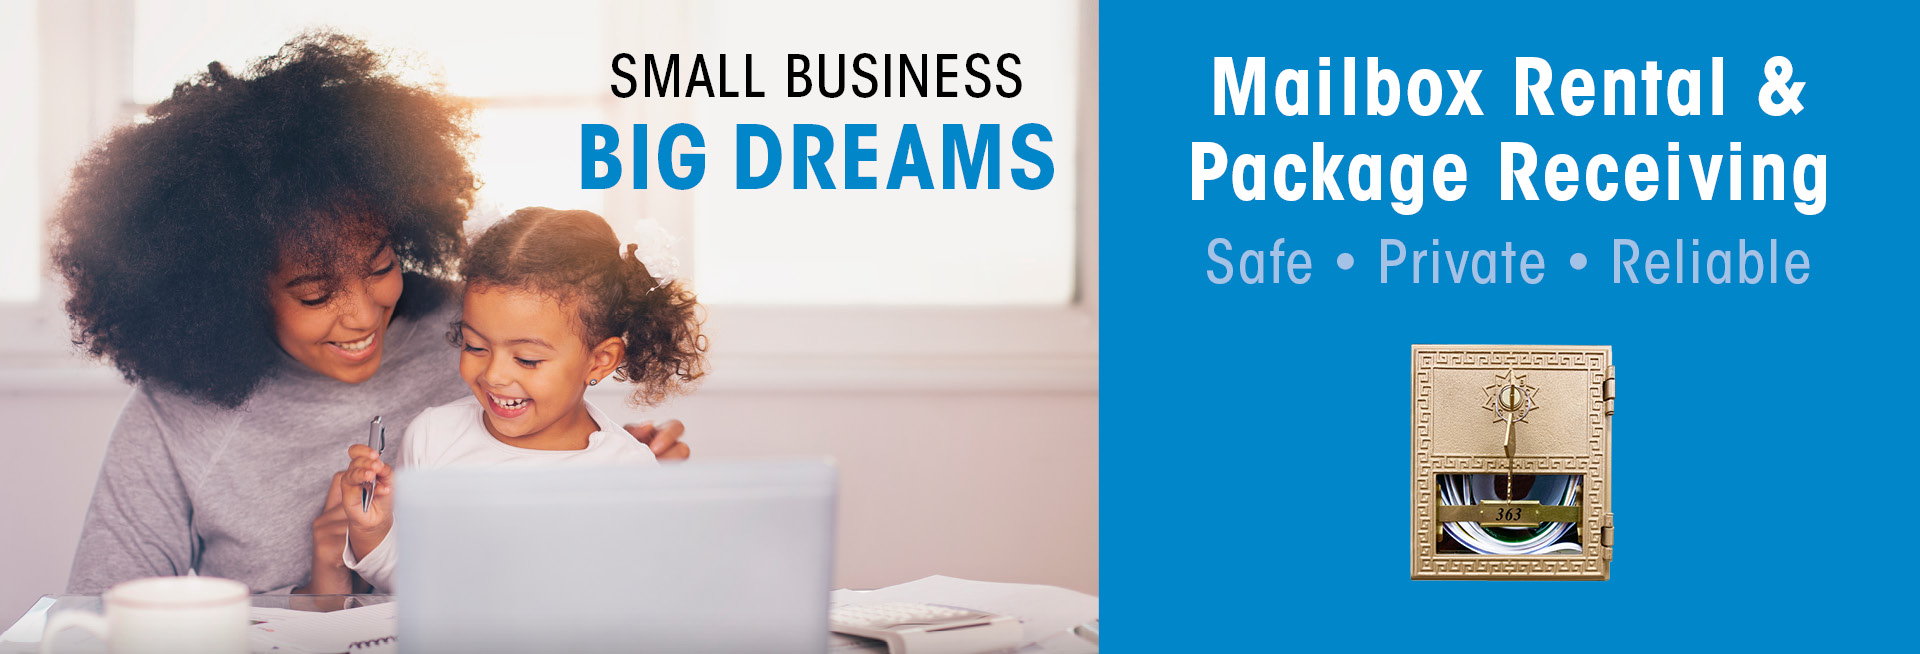 Small Business - Big Dreams - Mailbox Rental and Package Receiving  - Safe, Private, Reliable